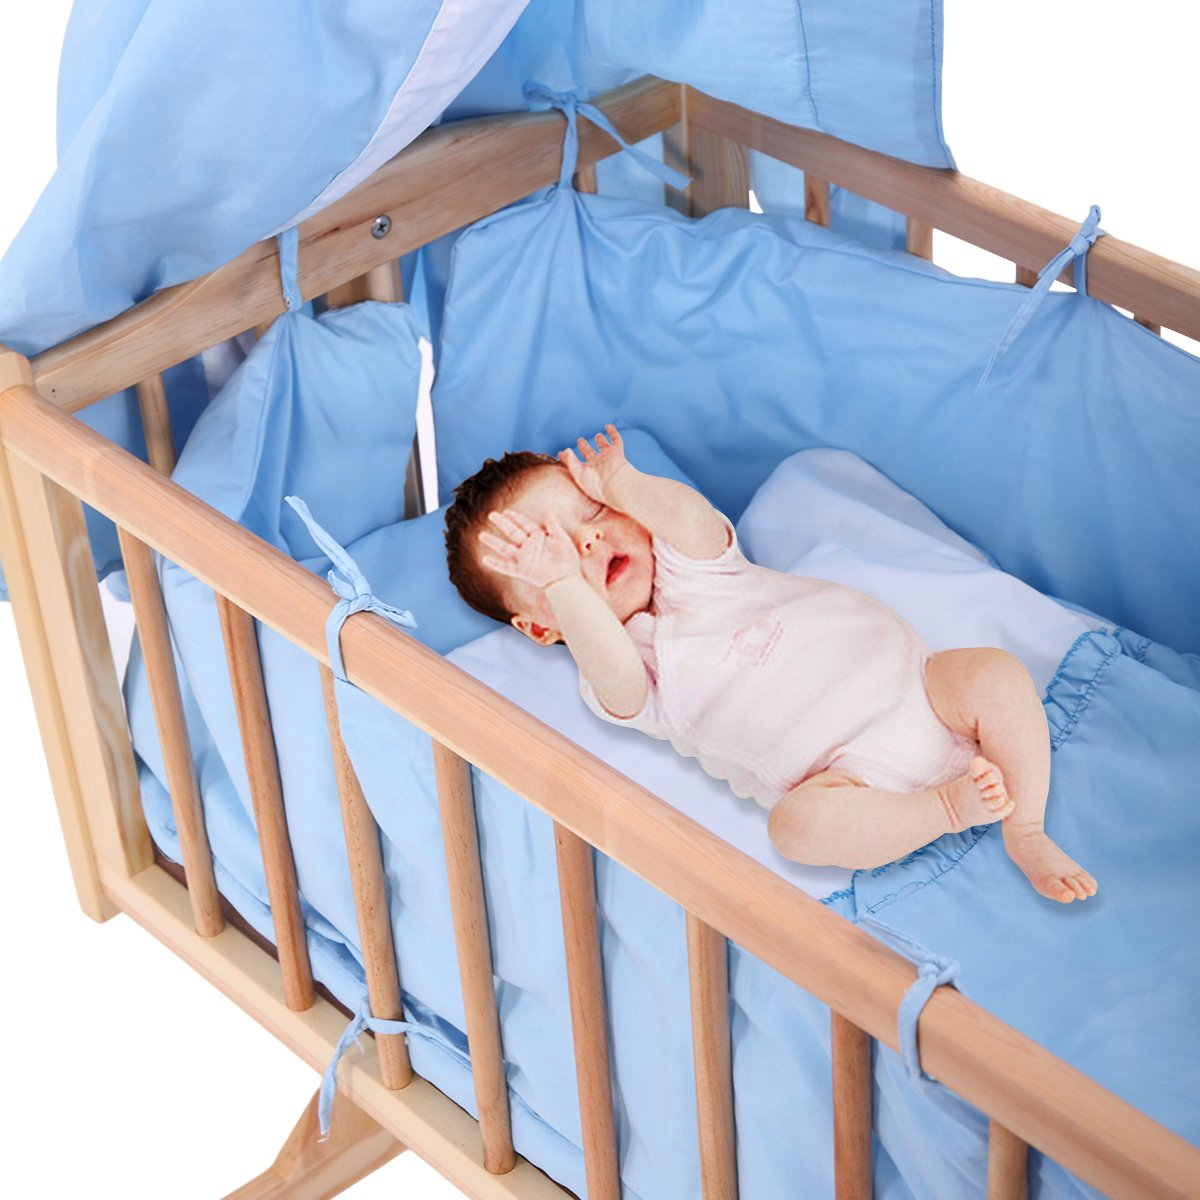 JAXPETY Wood Baby Cradle Rocking Crib Bassinet Bed Sleeper Portable Nursery Blue by JAXPETY (Image #3)